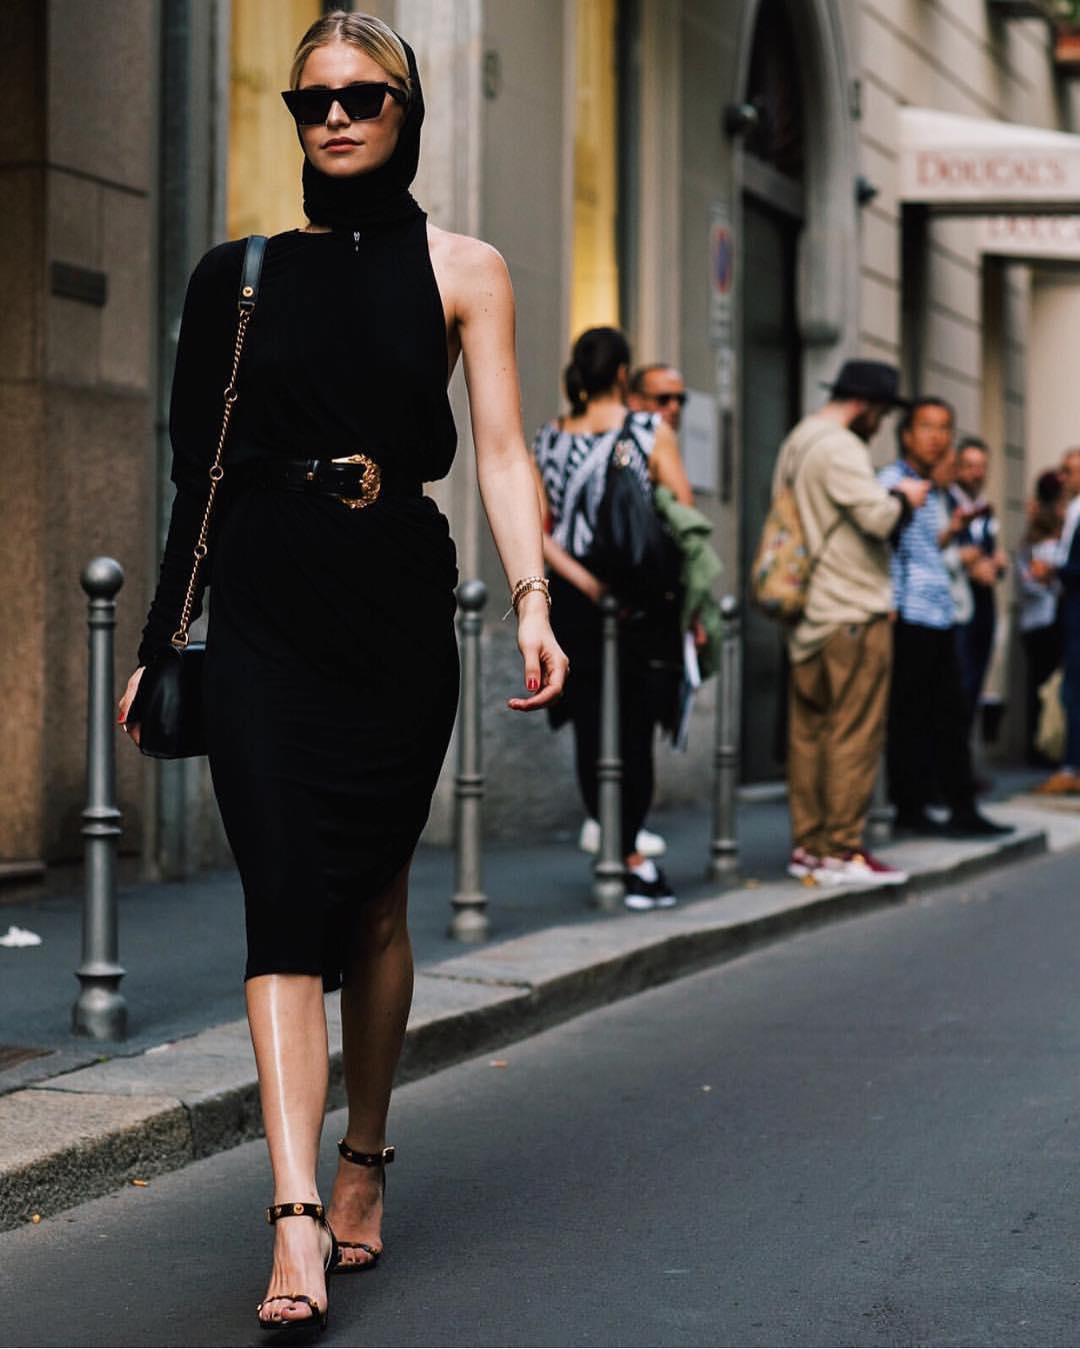 One Sleeve Black Dress For Spring Parisian Chic Walk 2020